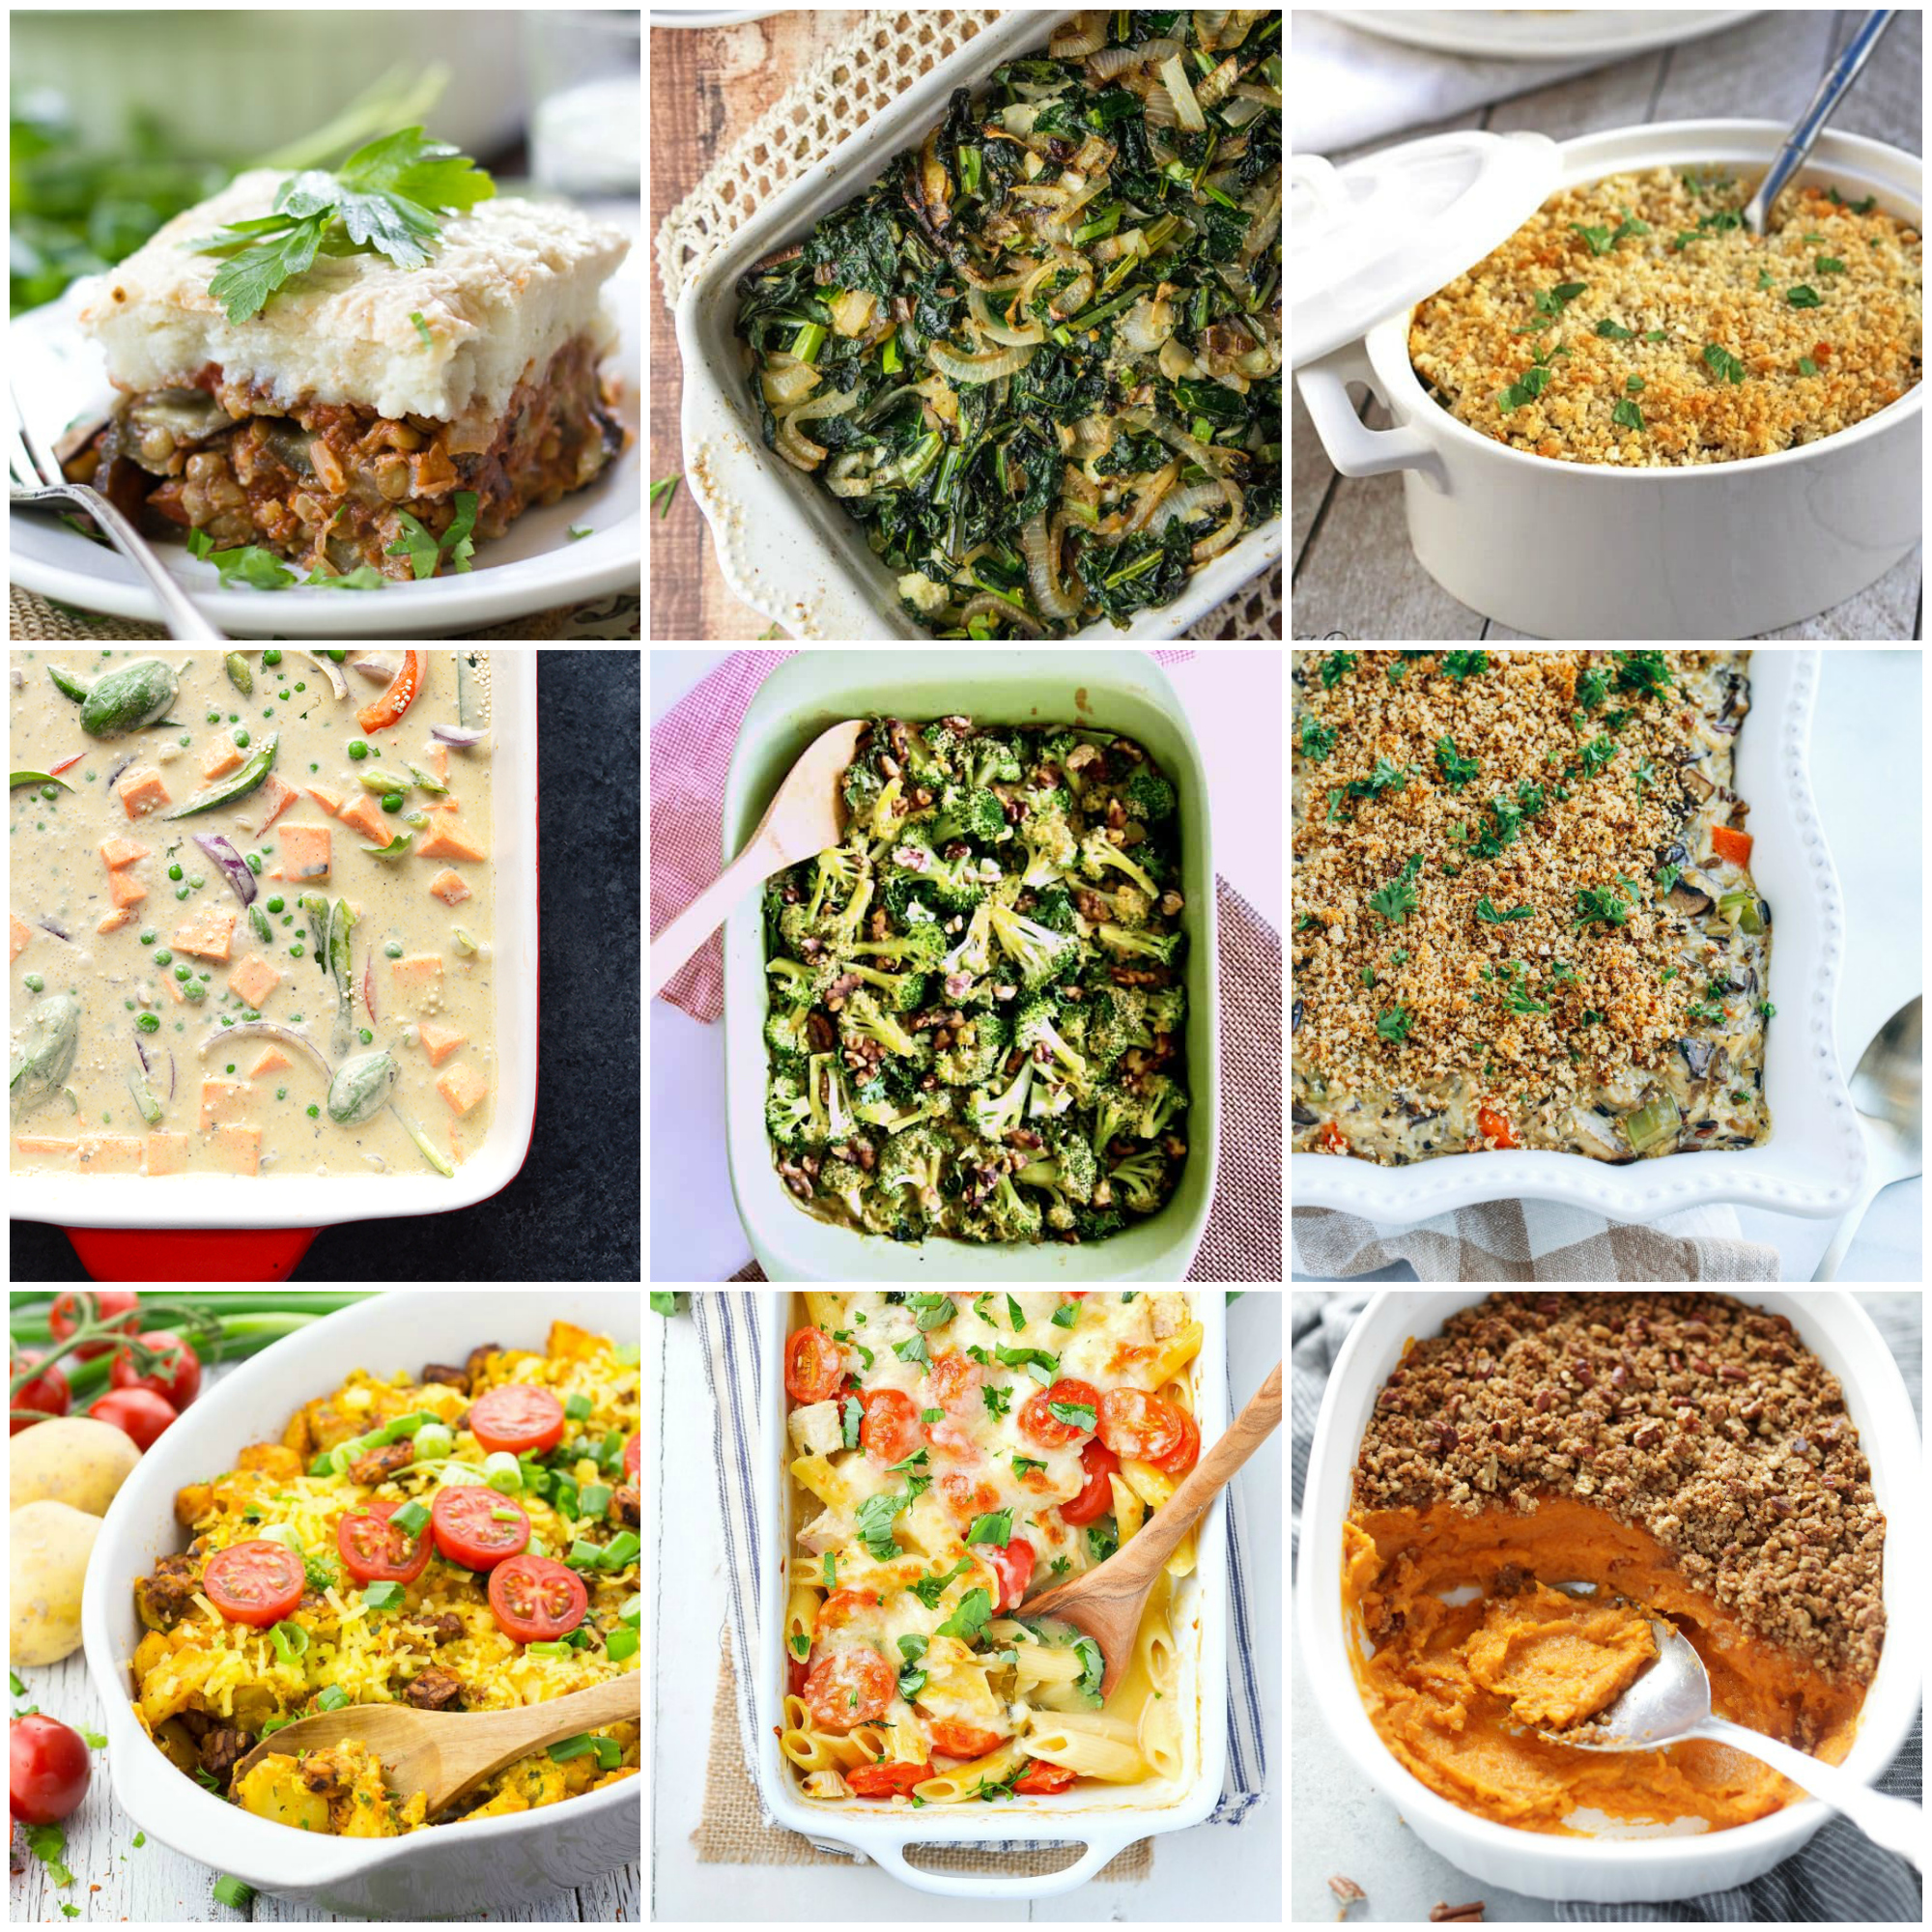 15 Vegan Casserole Recipes